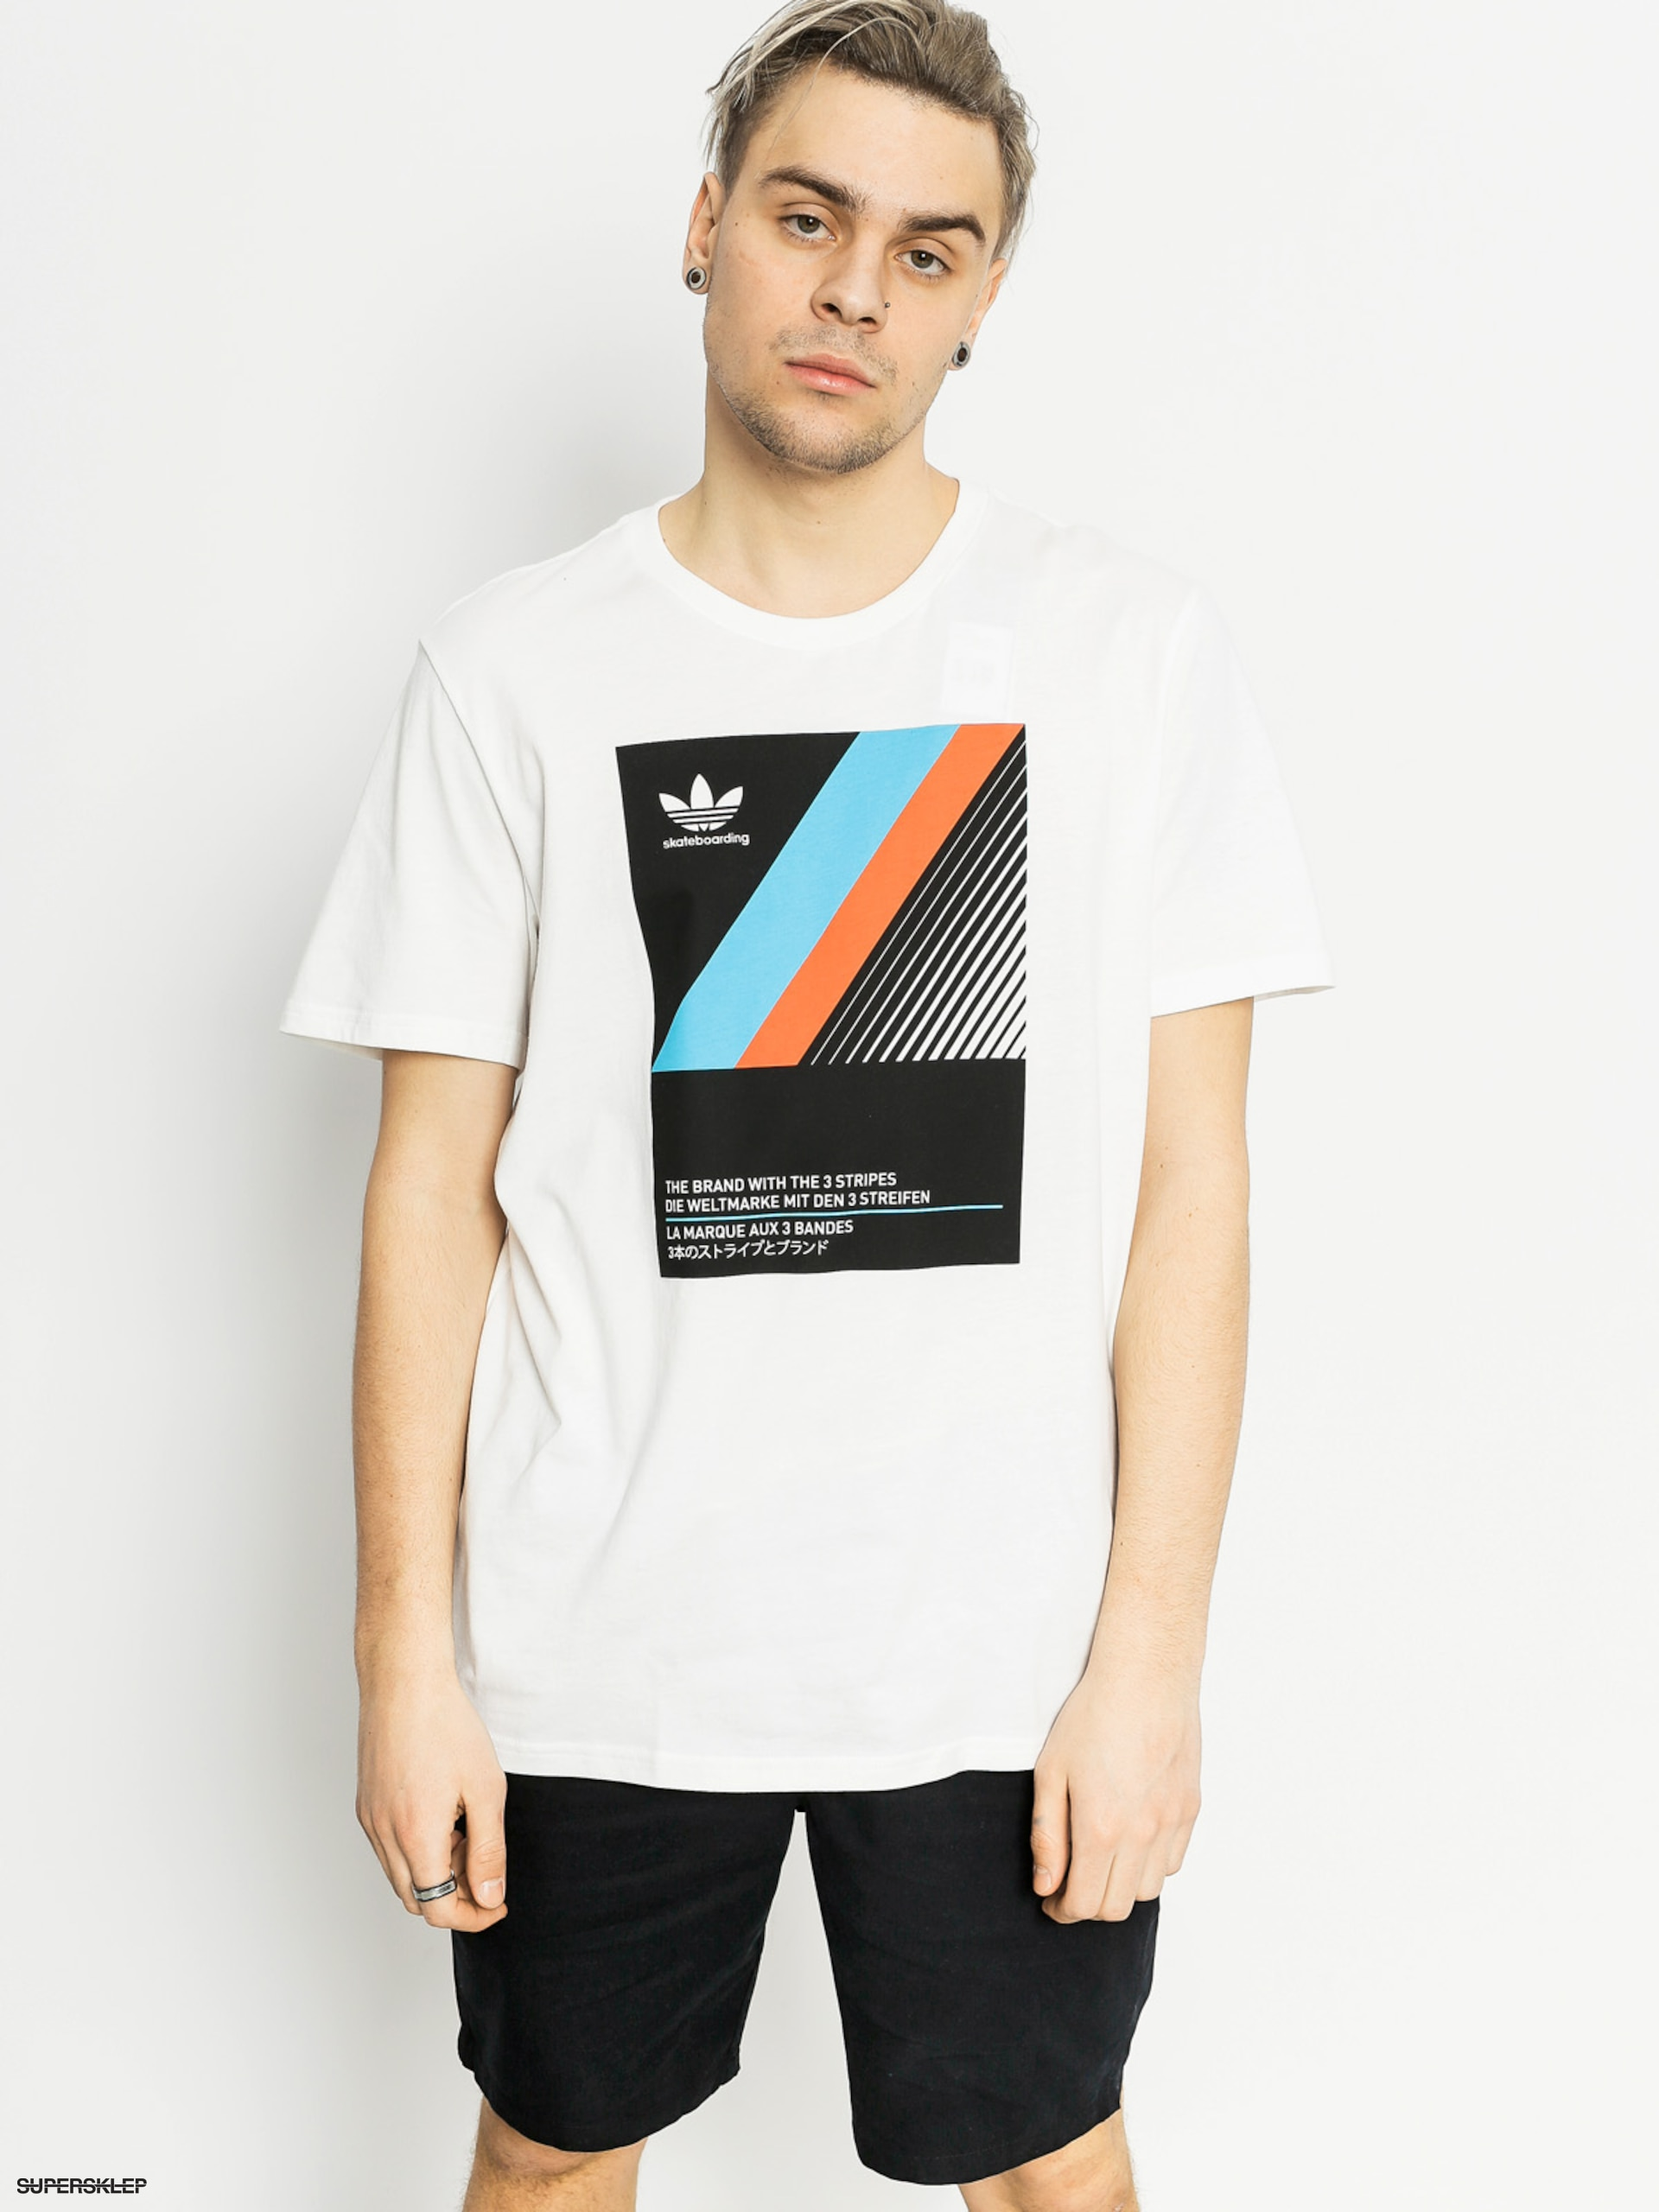 e3918004 T-shirt adidas Vhs Block (white/black/eneblu)